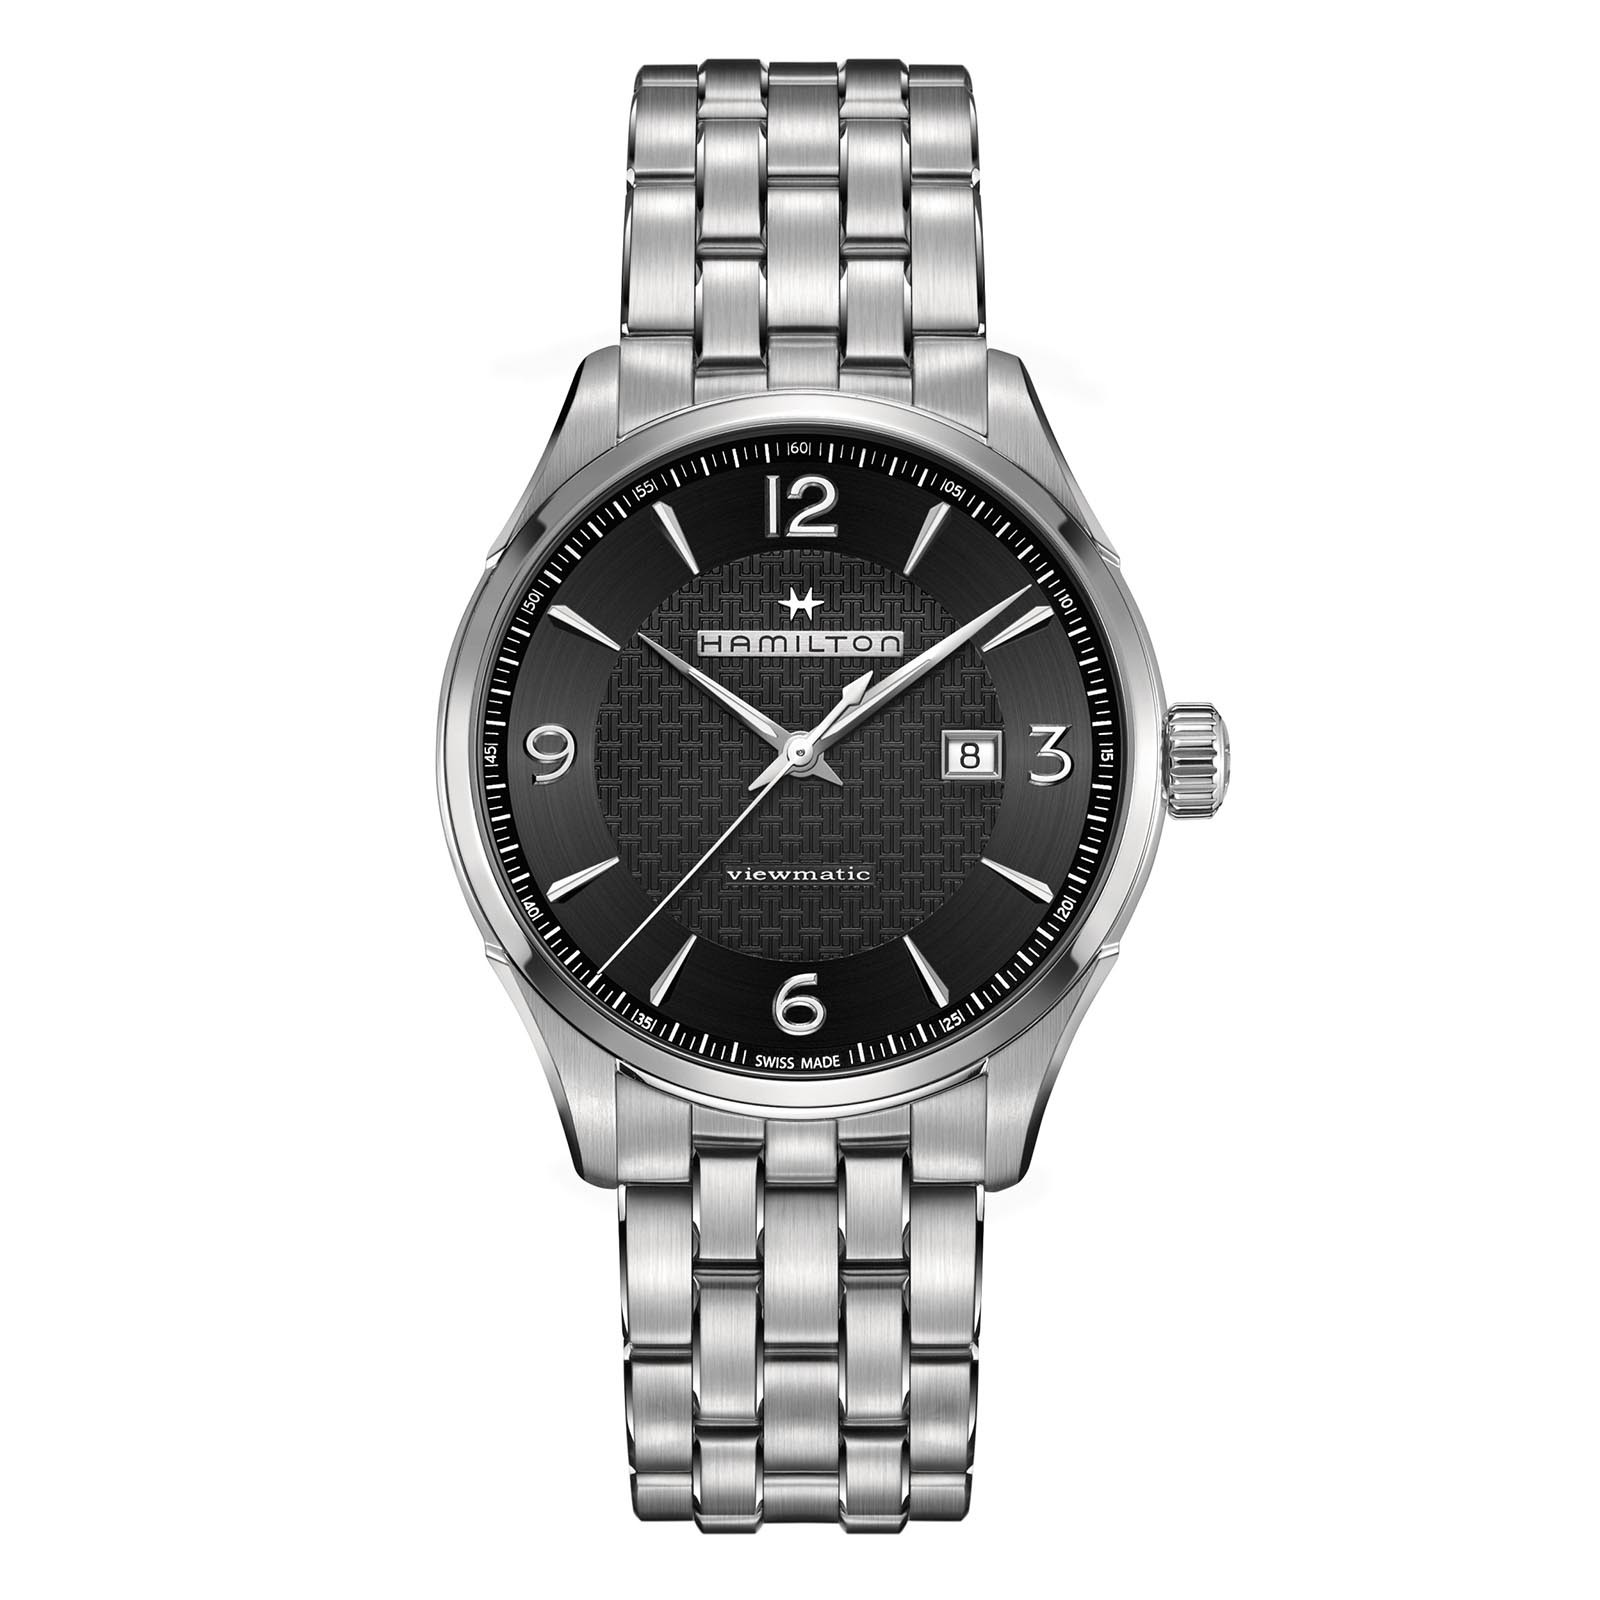 New Men's Hamilton Viewmatic